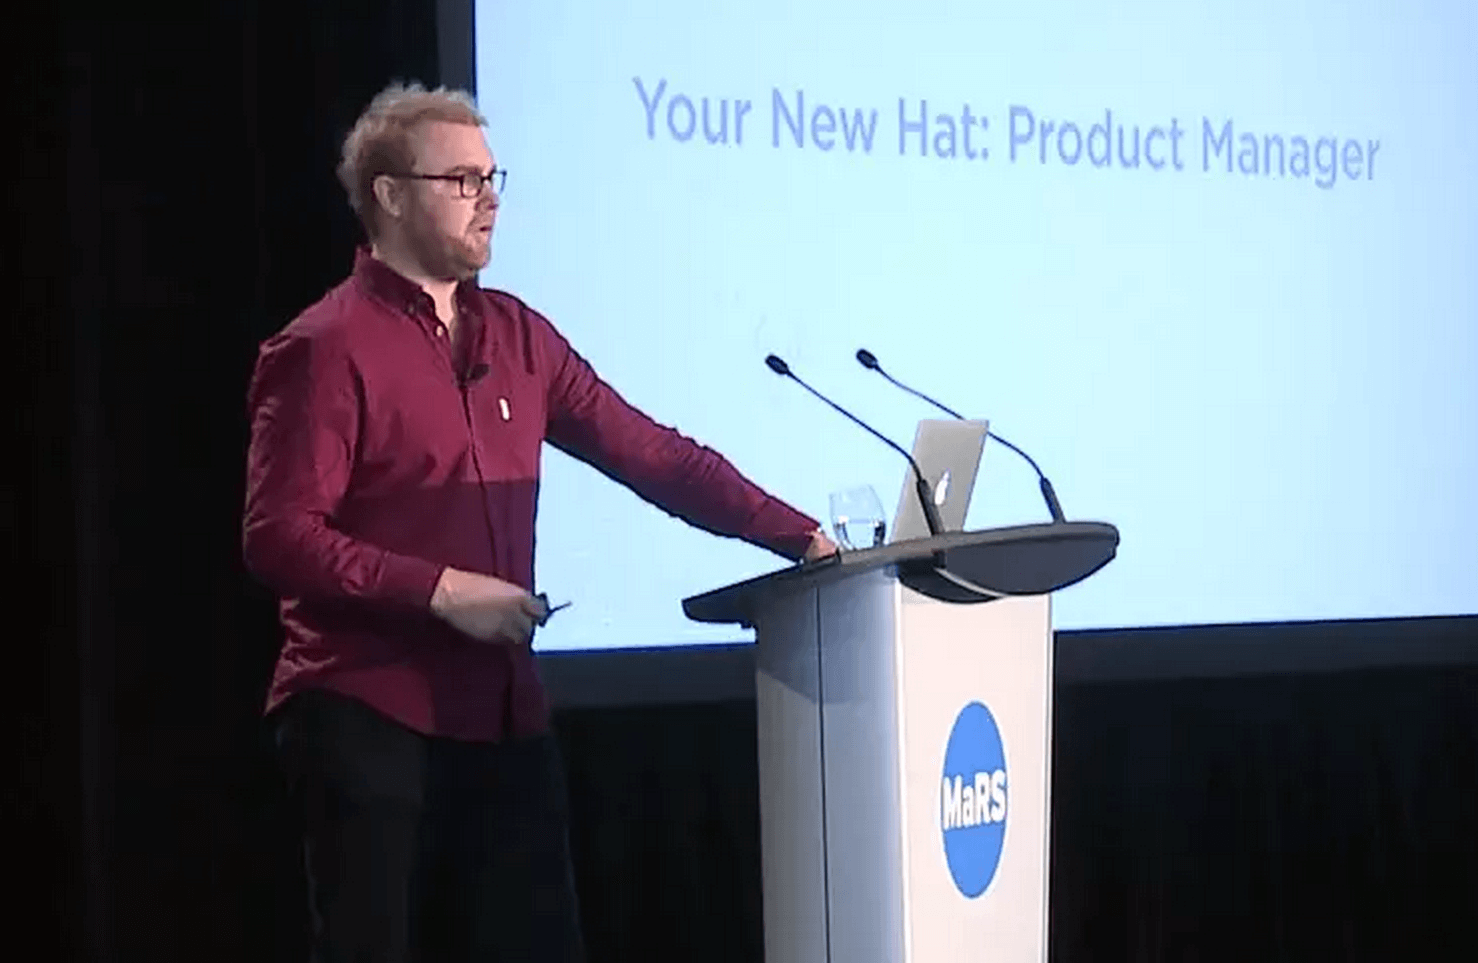 Putting on your product manager hat